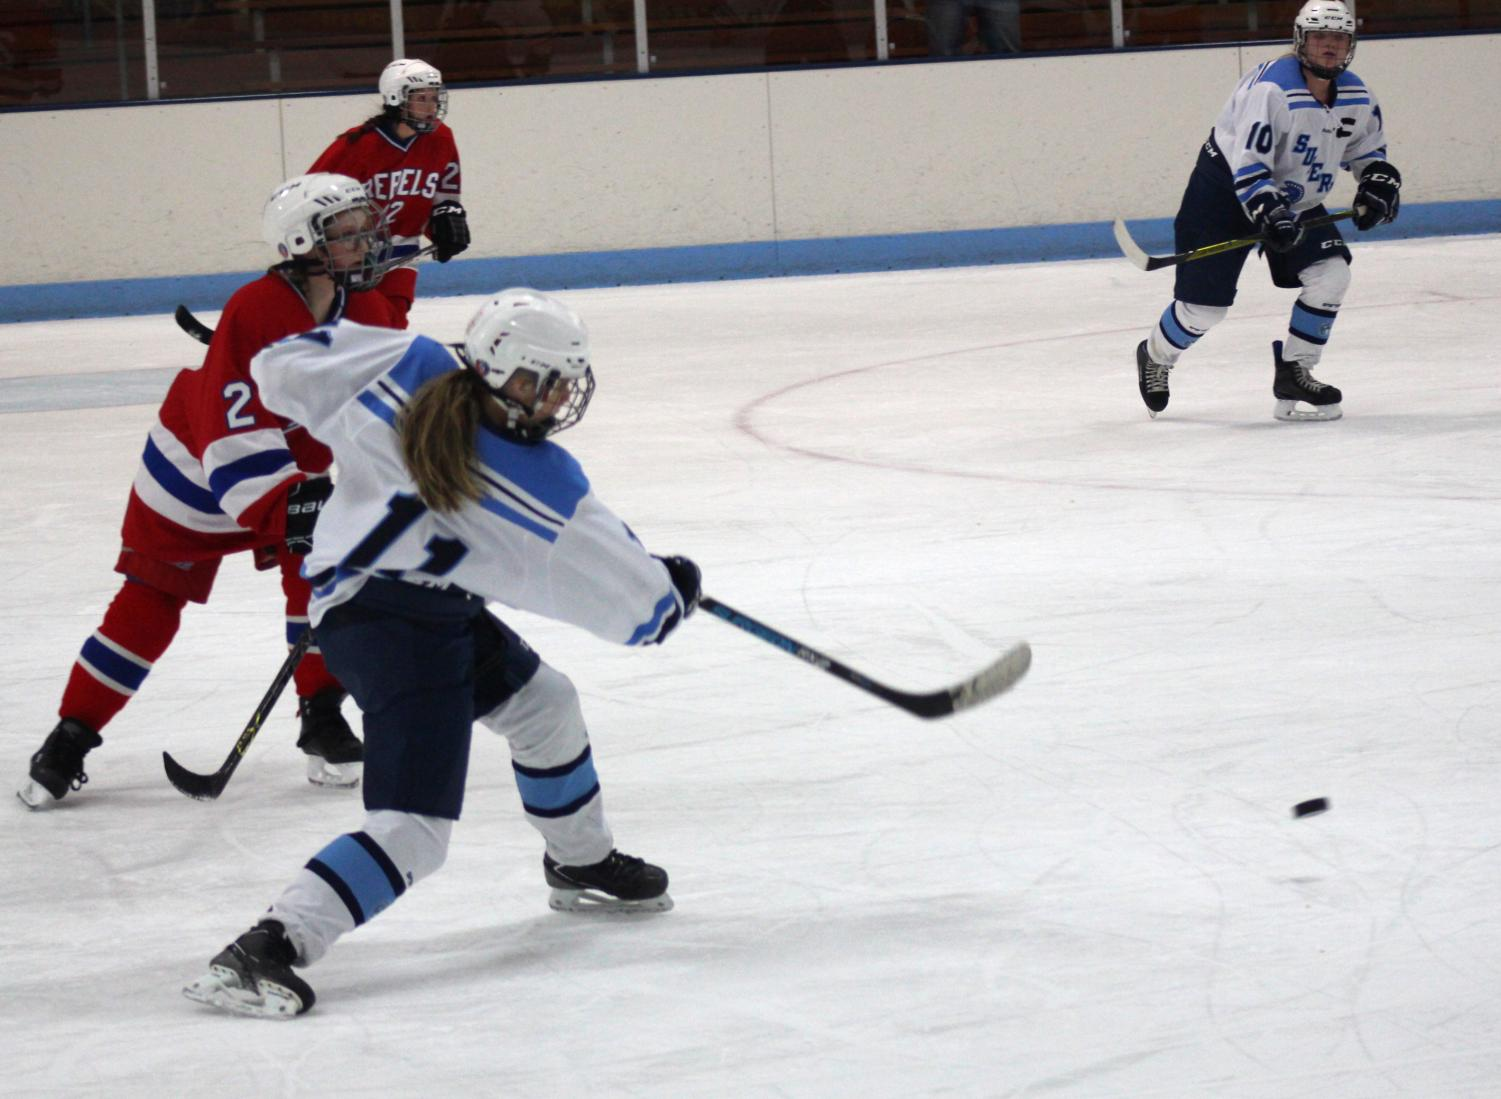 Freshman Lily Walrath (10) passes the puck to sophomore Arika Trentor (11) late in the second period of Tuesday's game against Moose Lake at the Superior Ice Arena. The Spartans and Rebels tied 4-4.